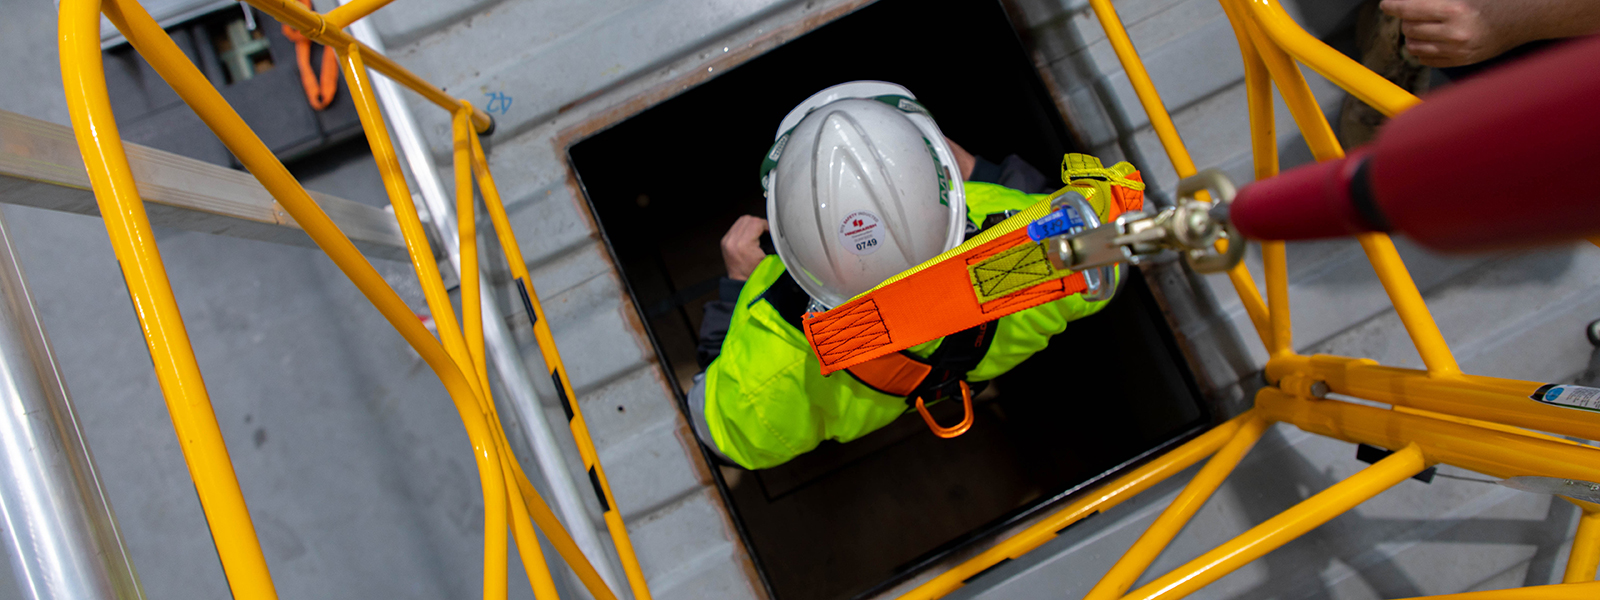 Confined space entry during combined refresher training.